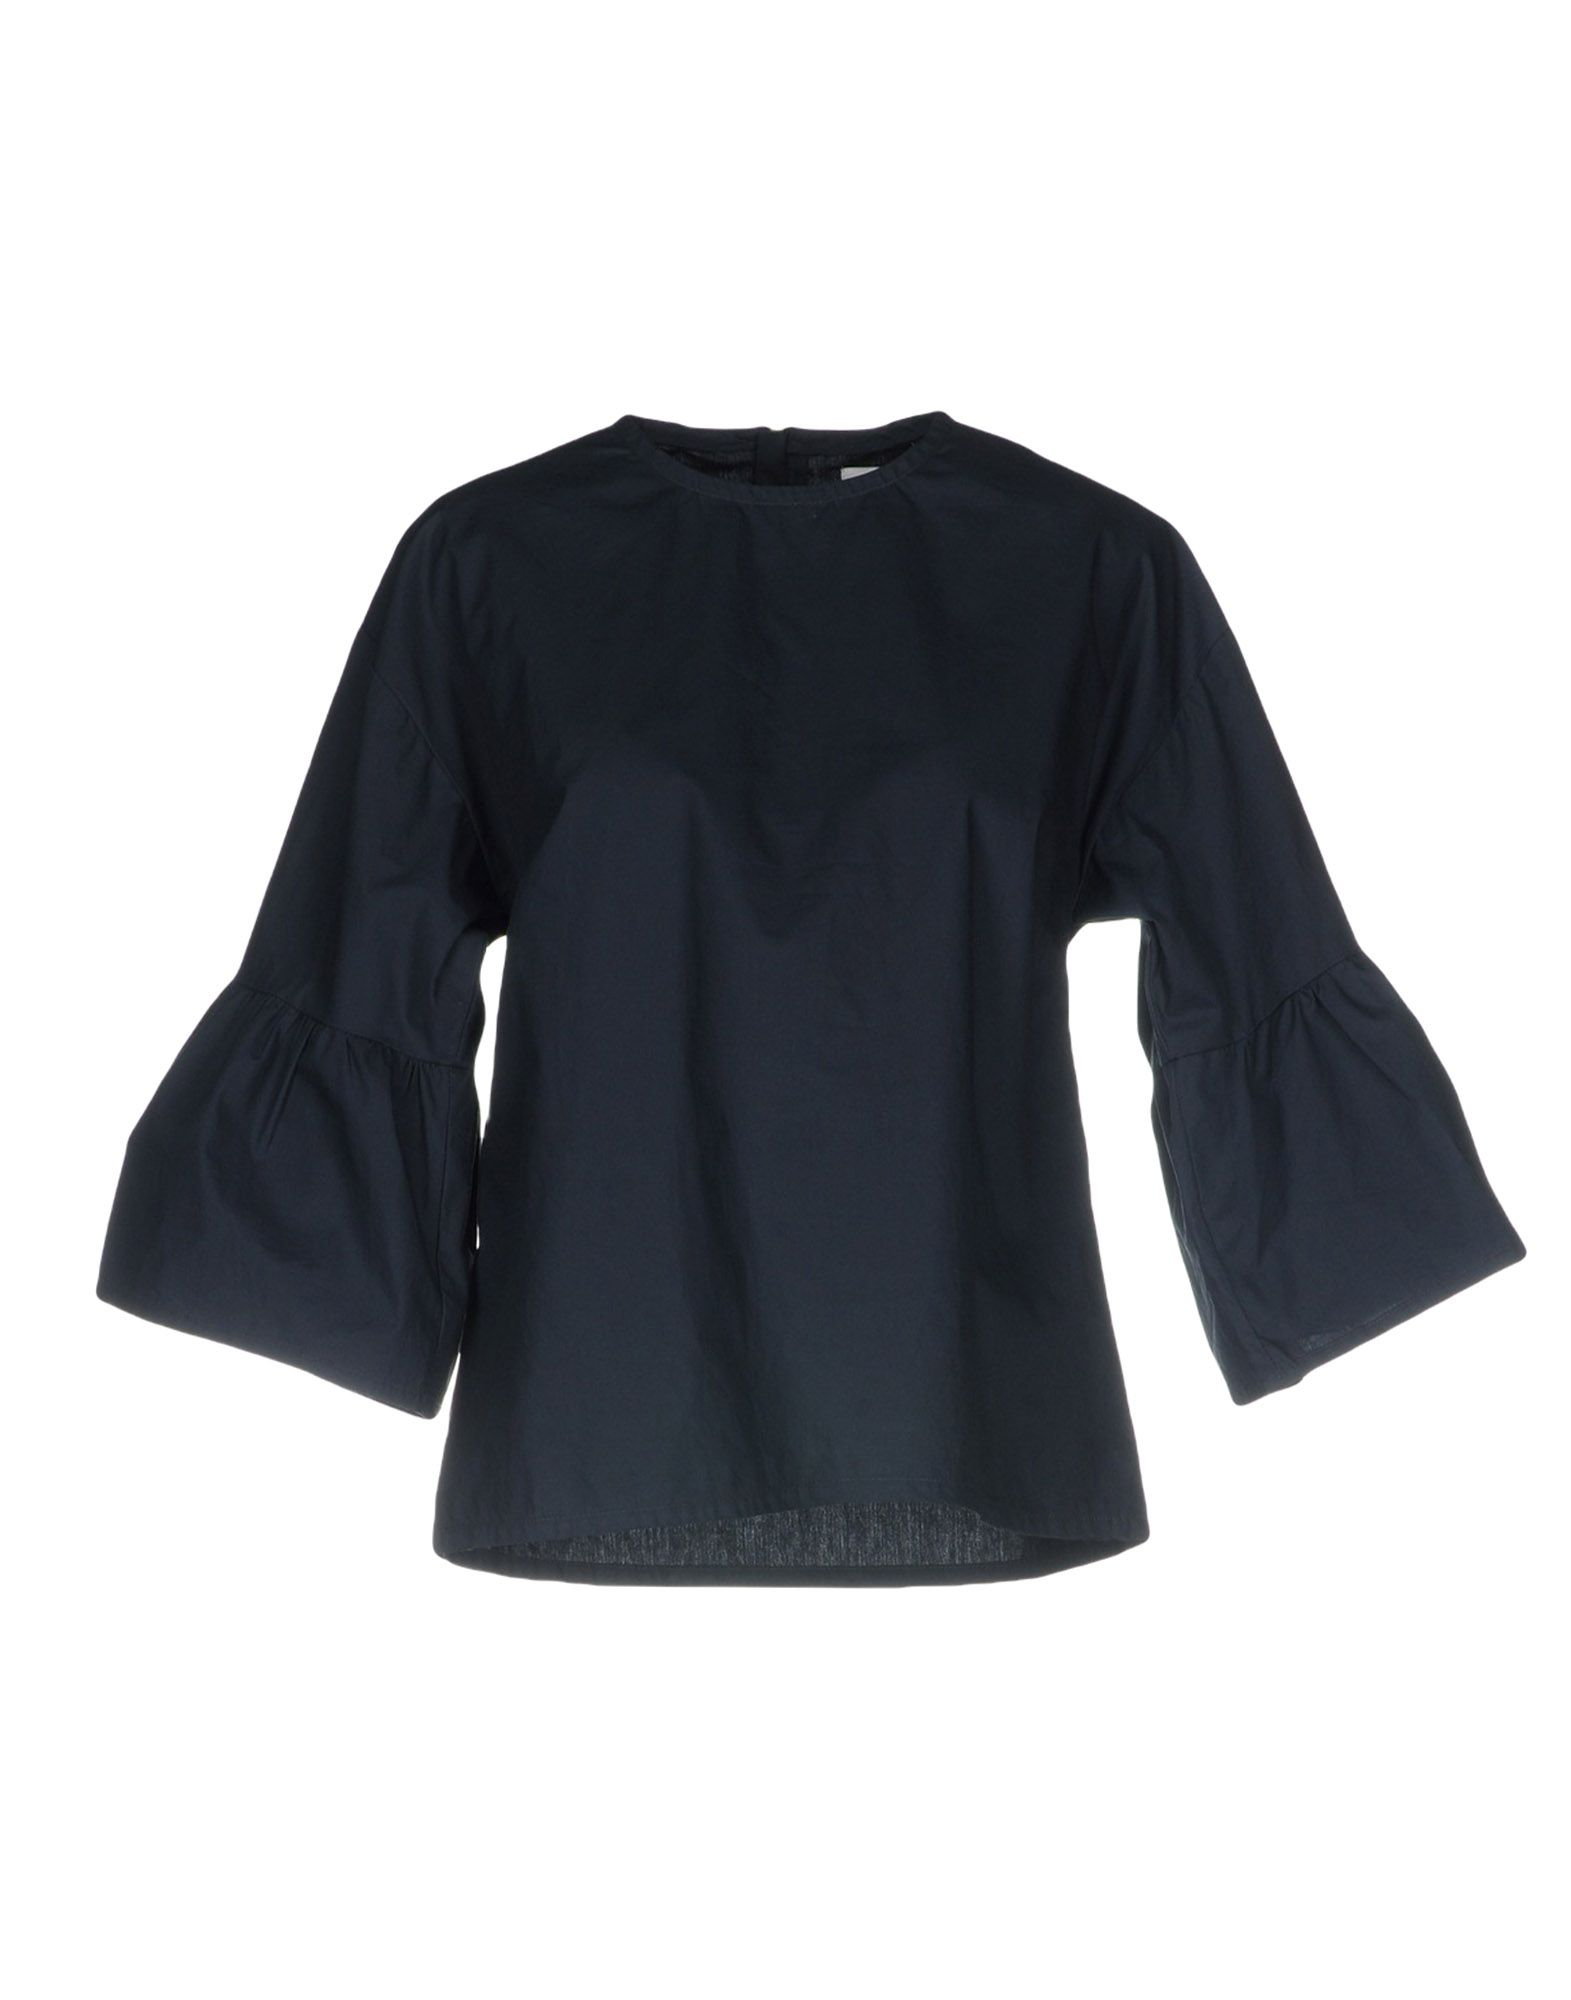 LF MARKEY Blouse in Dark Blue